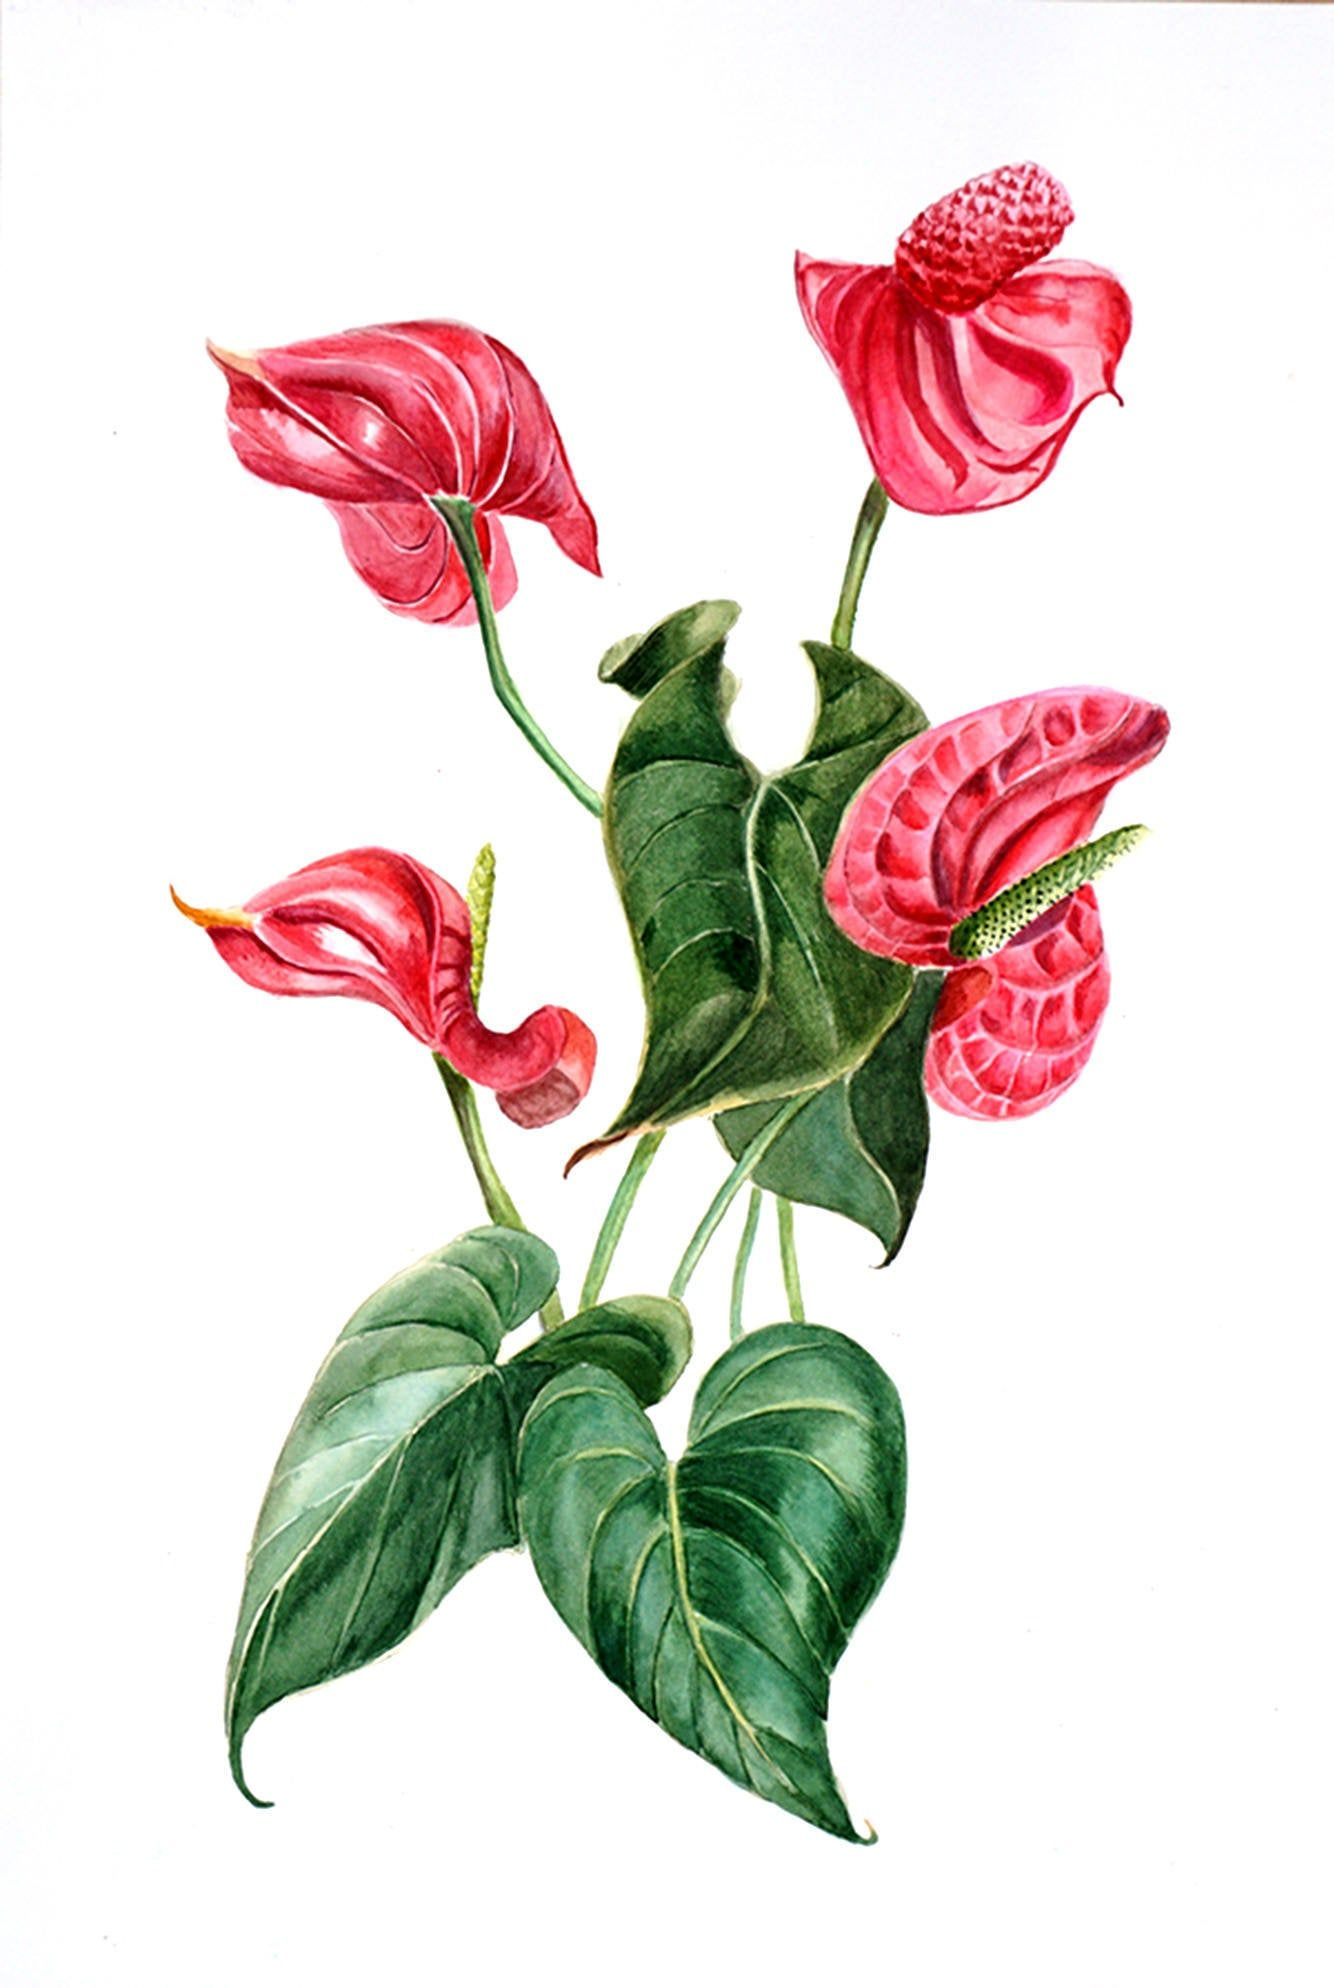 Red Flower Painting Original Watercolor Anthurium Floral Etsy Flower Painting Original Flower Painting Botanical Wall Art